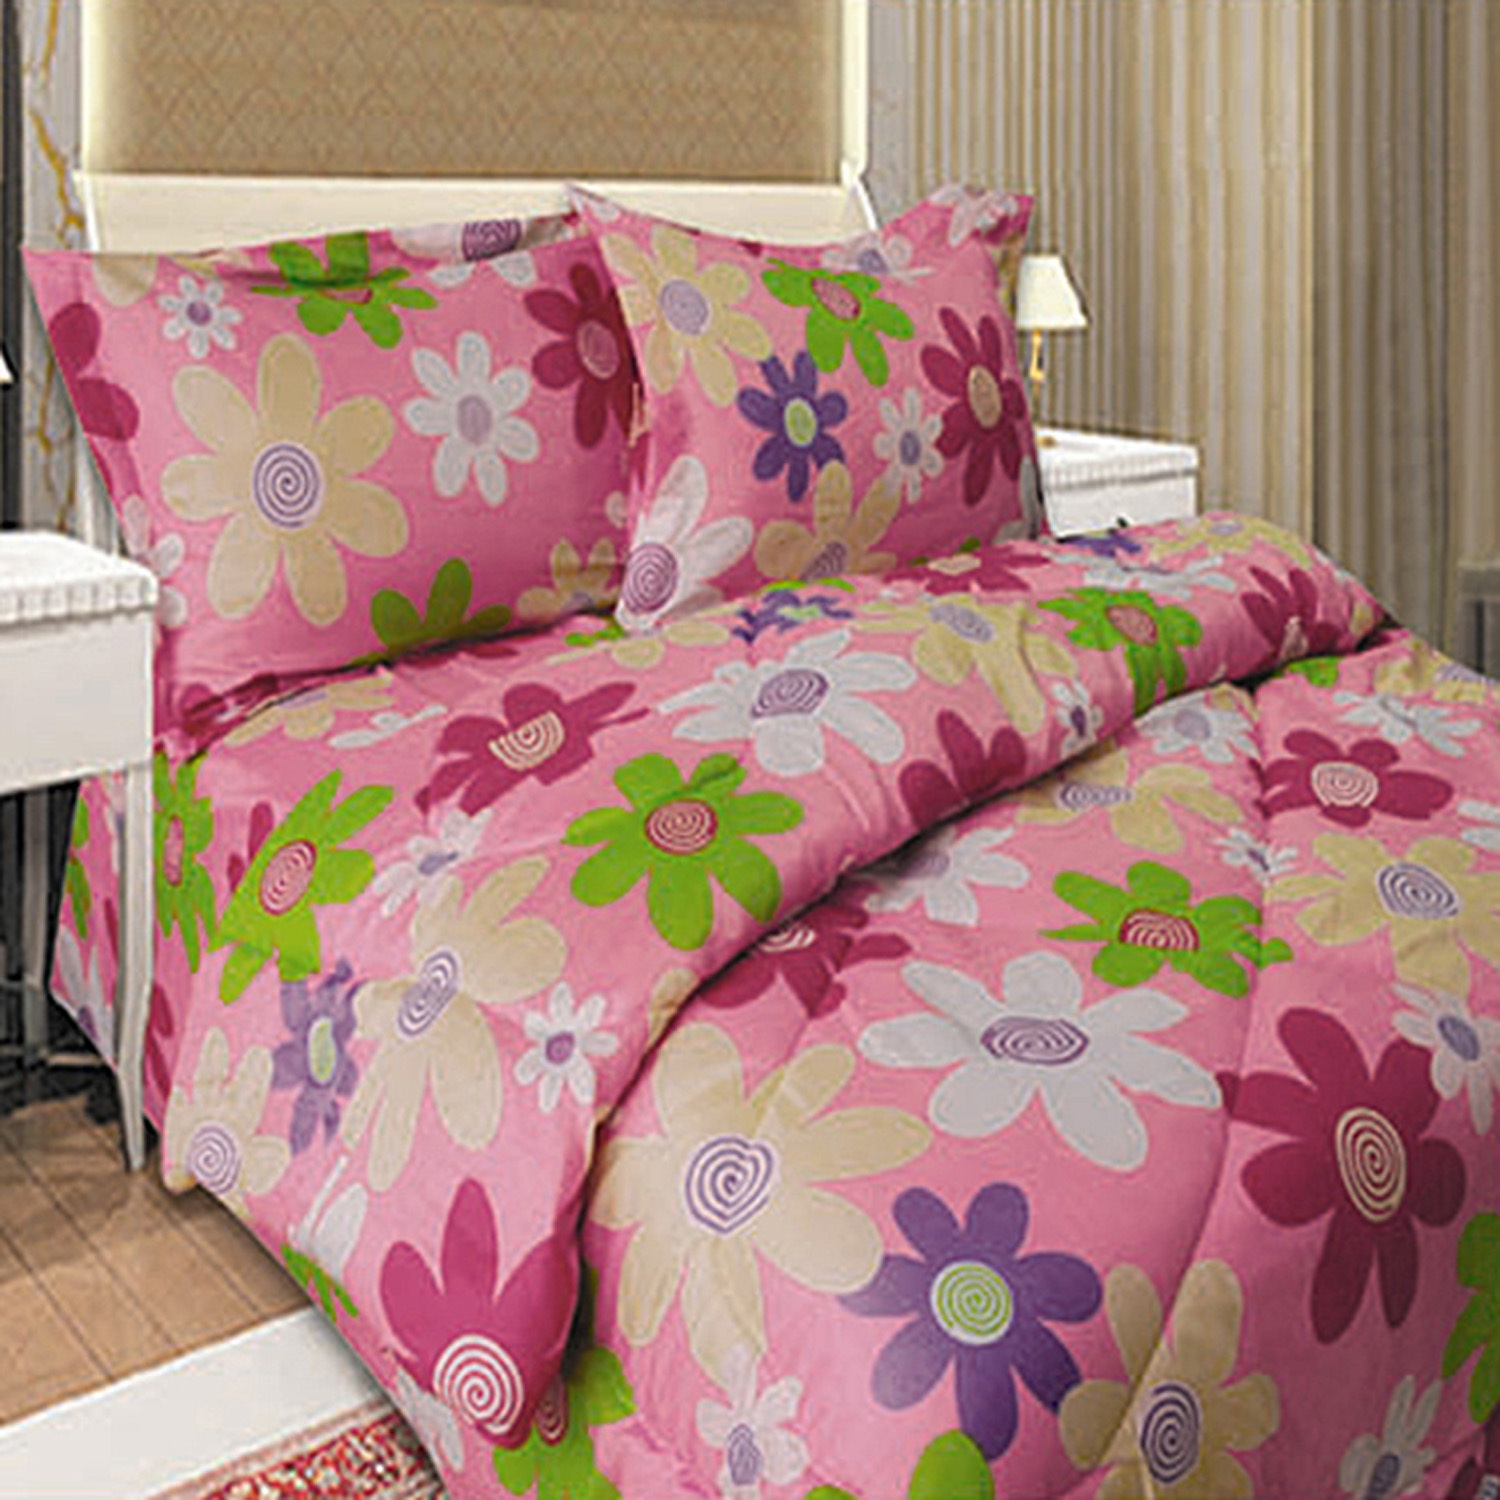 Multicolored Daisy Microfiber Twin Size Pink Comforter and Pillow Shams